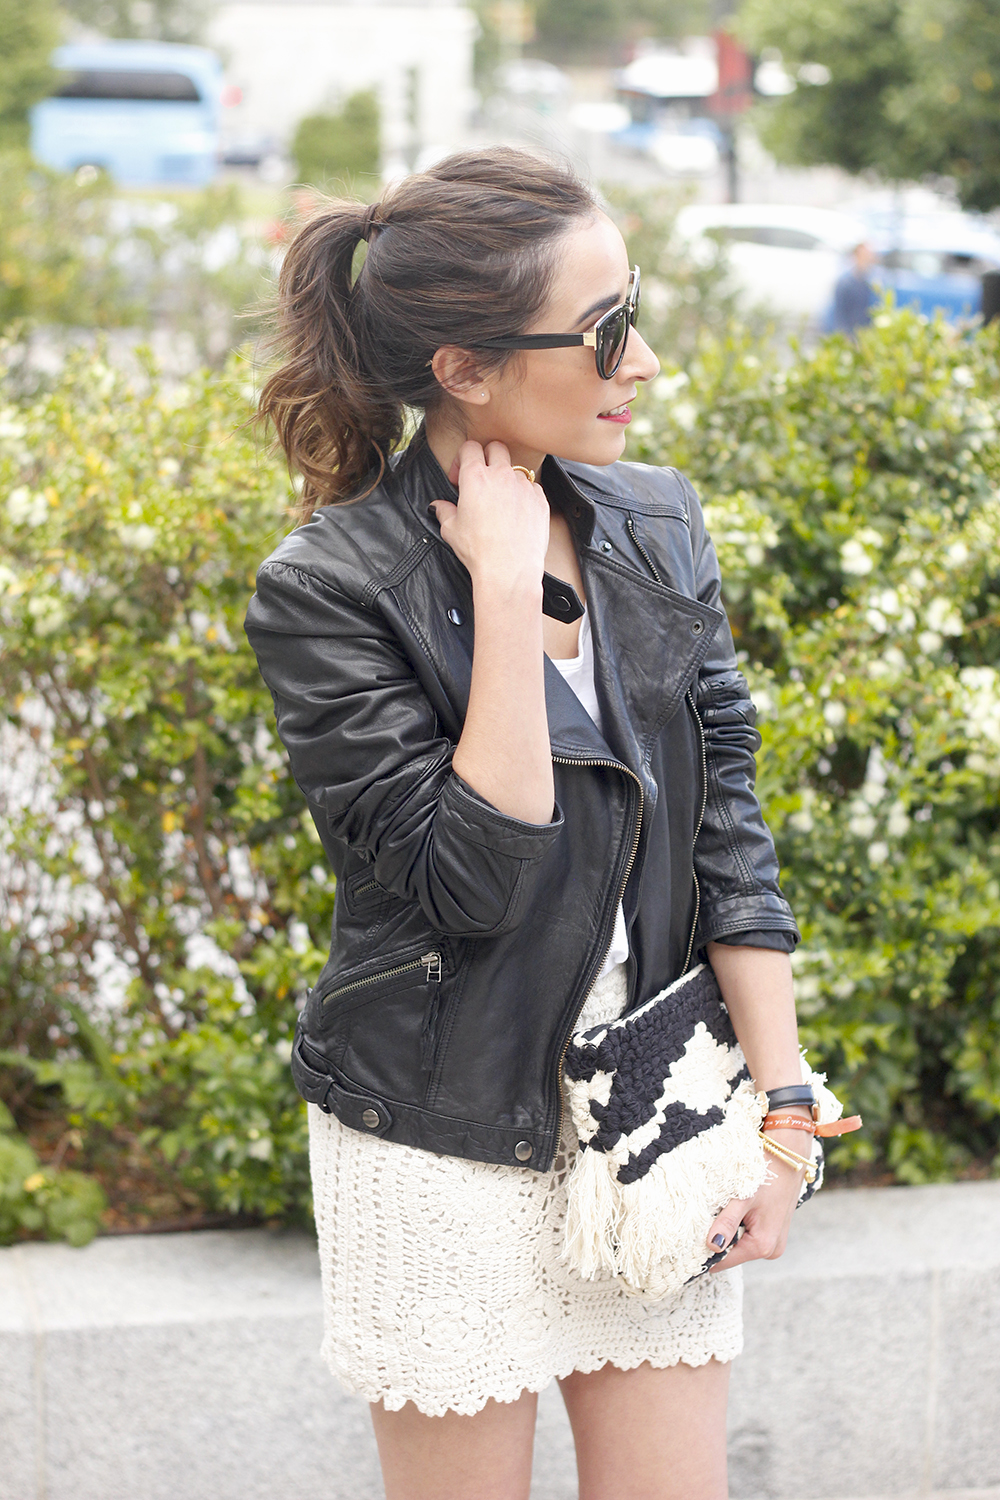 crochet skirt leather jacket black heels sunnies spring outfit style19